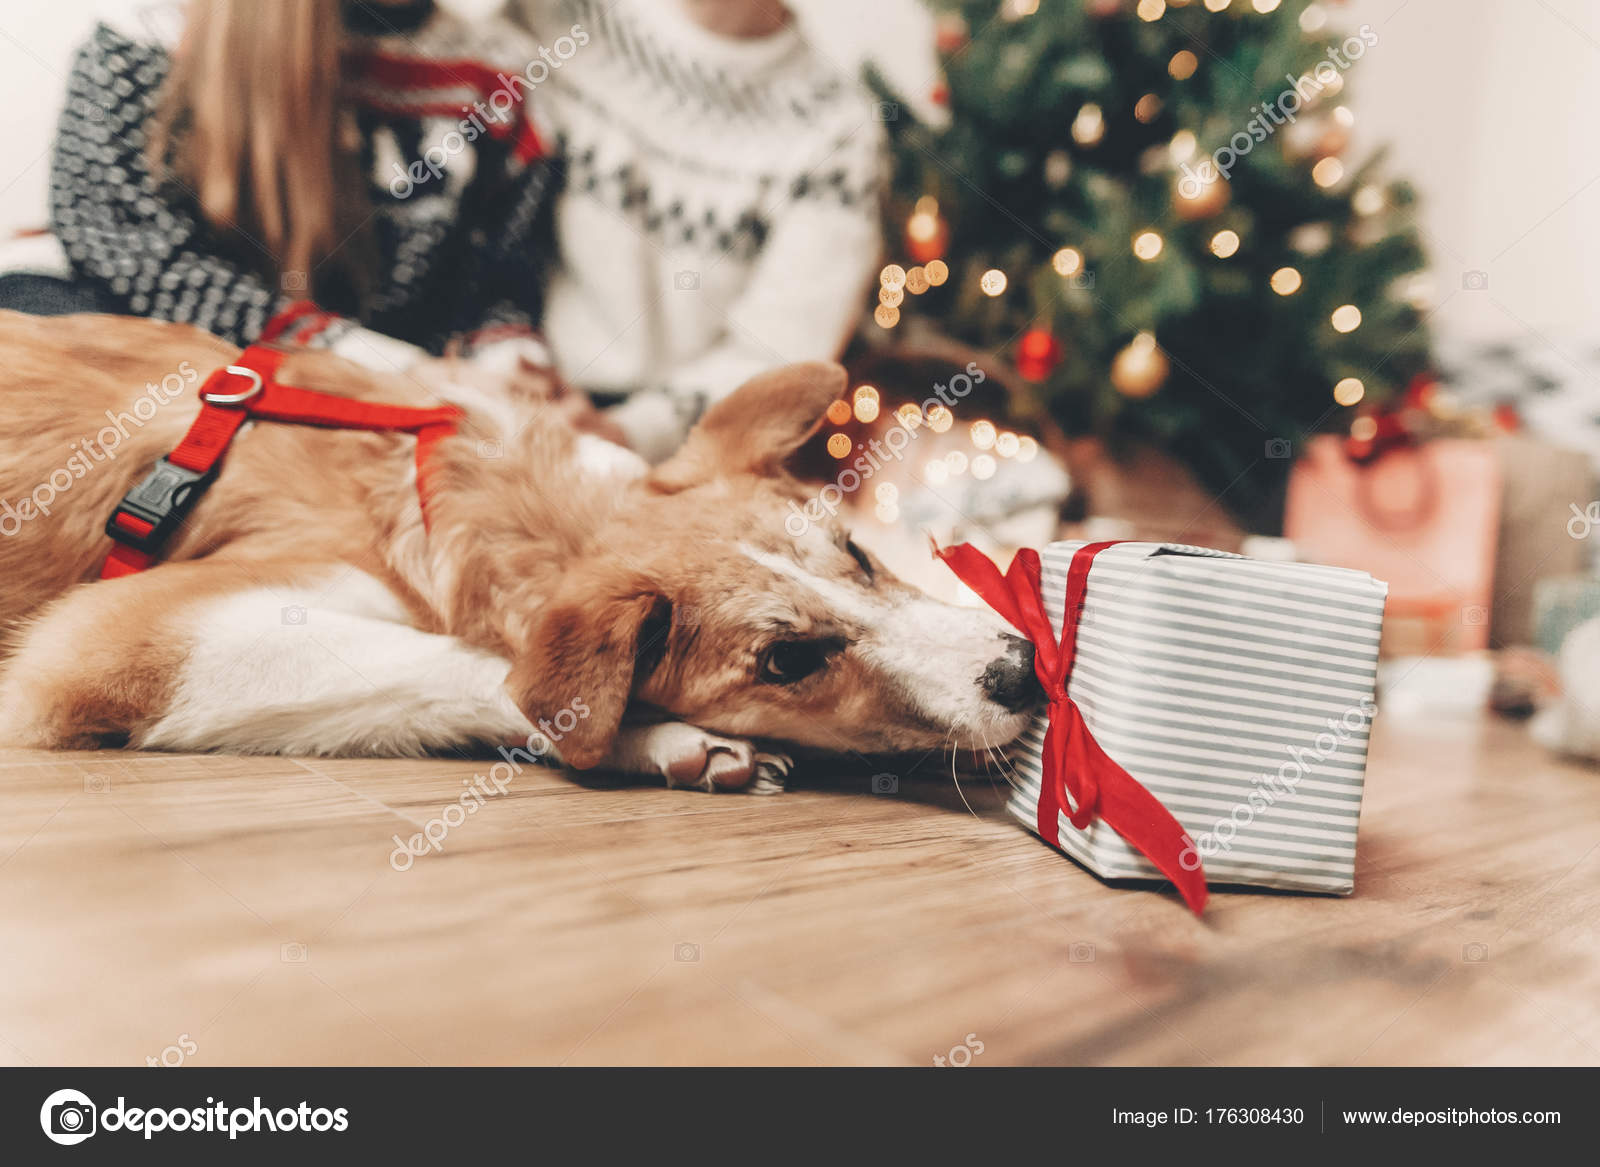 Cute Funny Dog And Stylish Gift On Background Of Happy Family In Festive Sweaters At Christmas Tree Lights Photo By Sonyachny